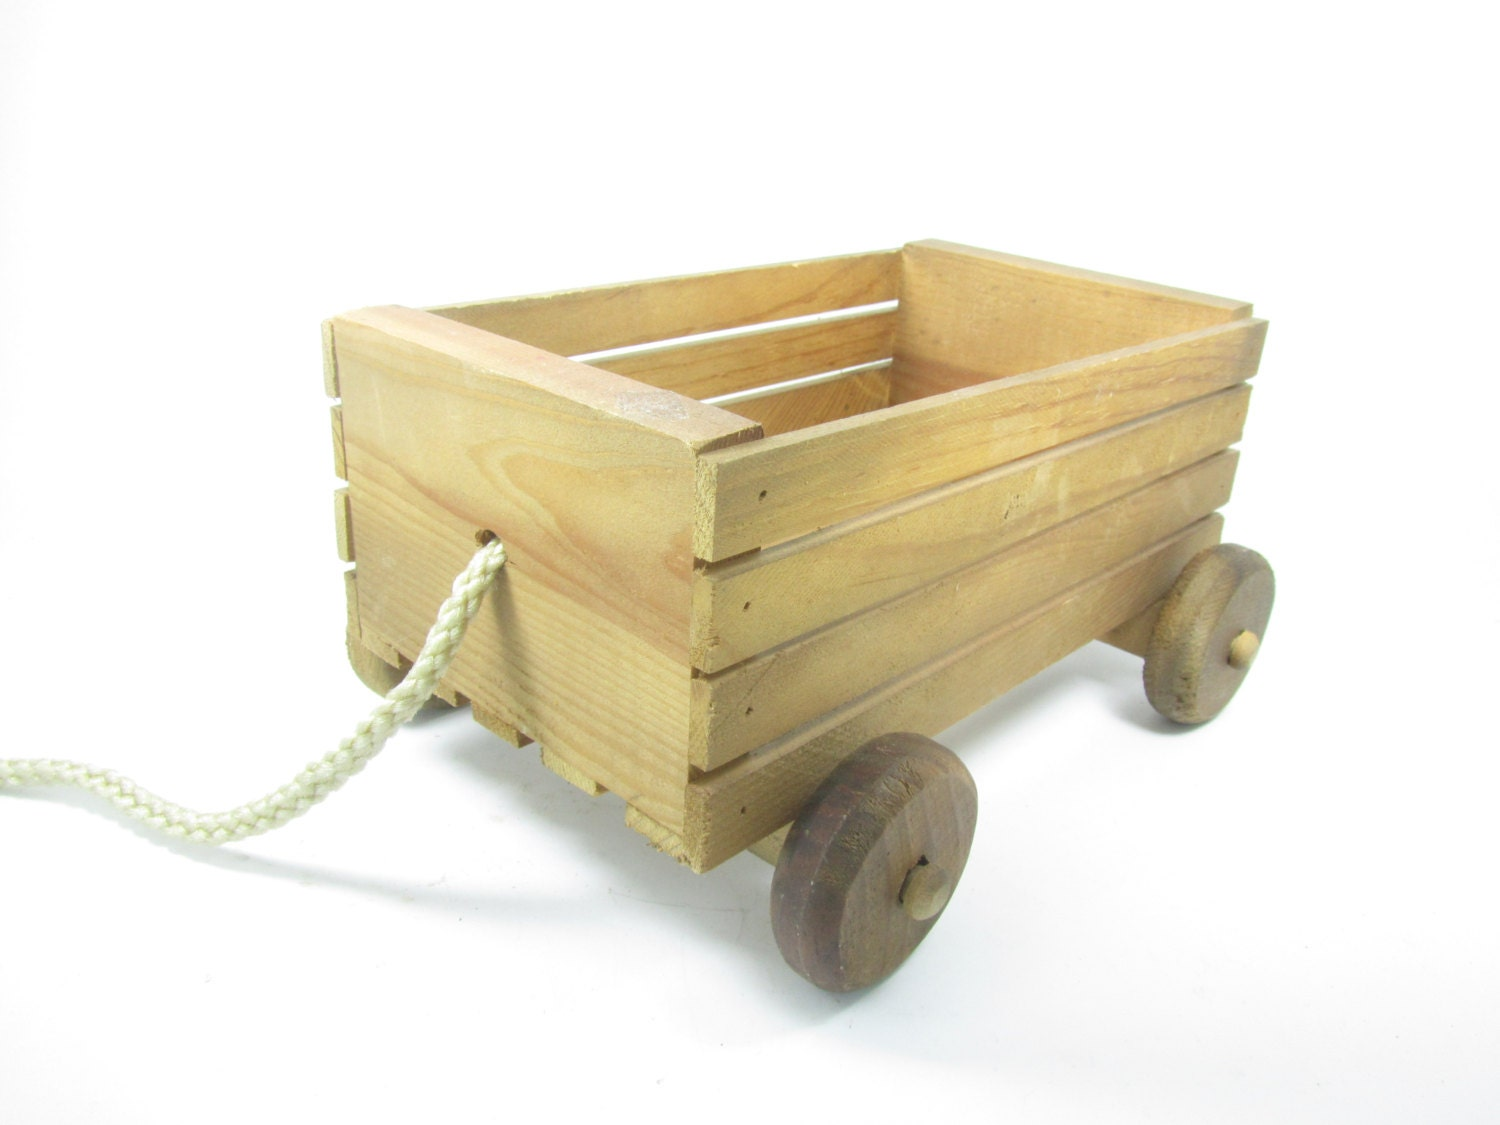 Wood Crafts Old fashioned wooden toy plans